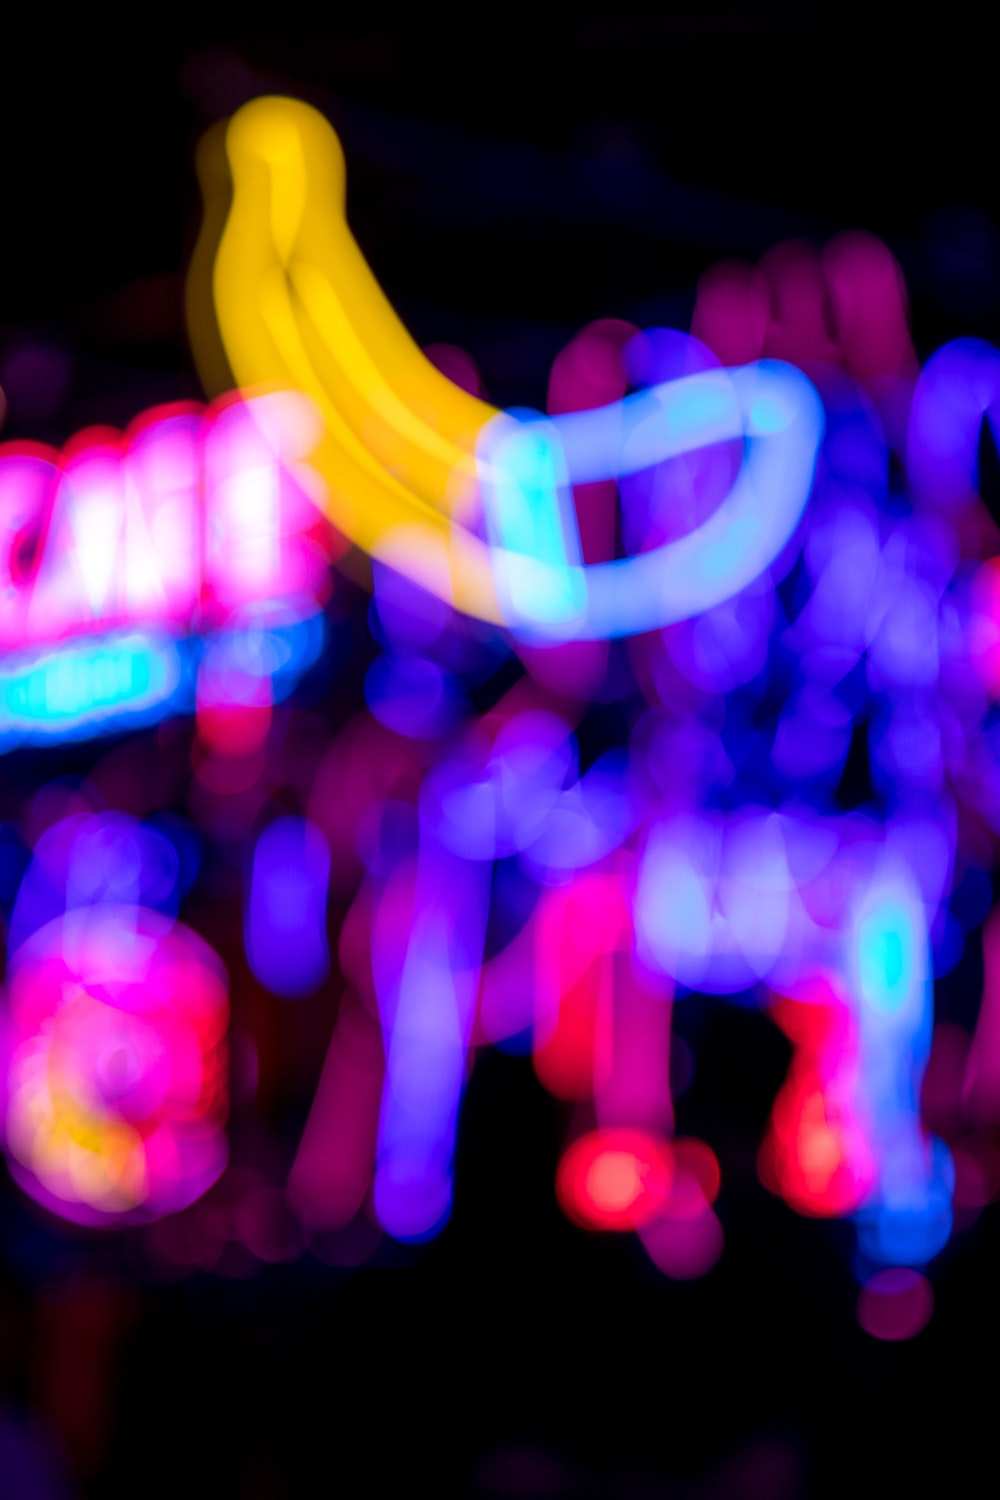 neon light pictures download free images on unsplash